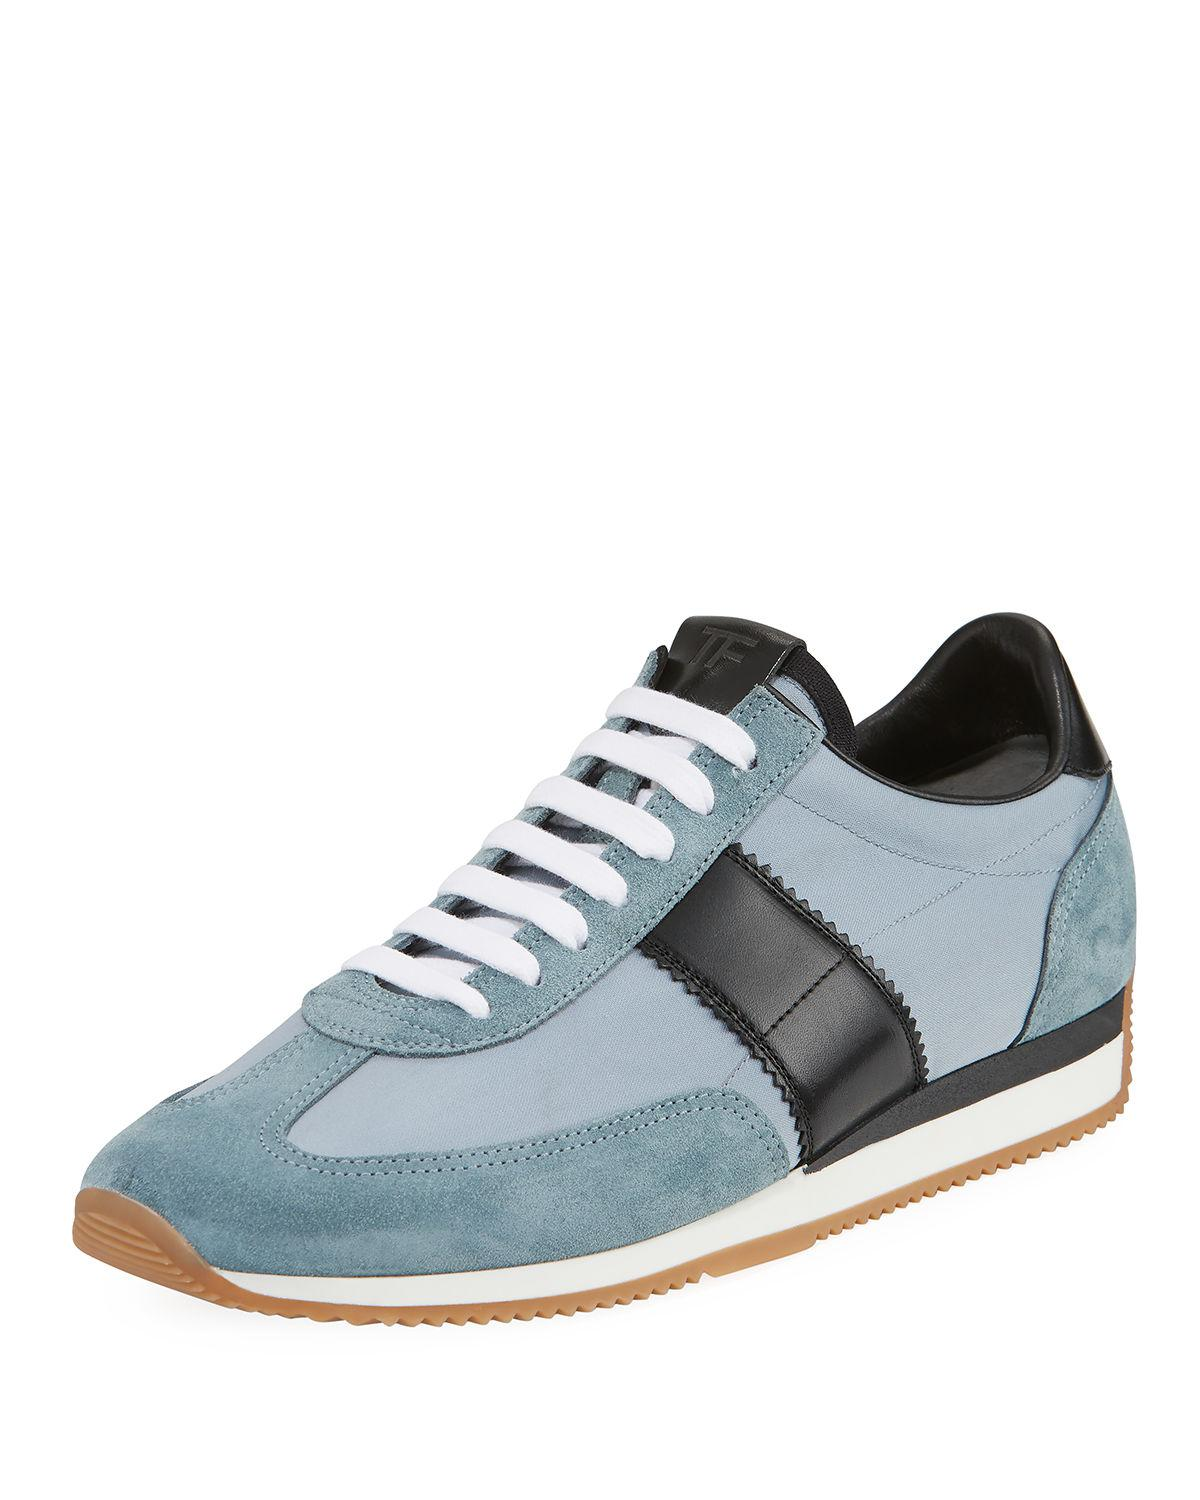 57190c296e9 tom-ford-BLUE-Mens-Suede-trim-Mesh-upper-Low-top-Sneakers.jpeg